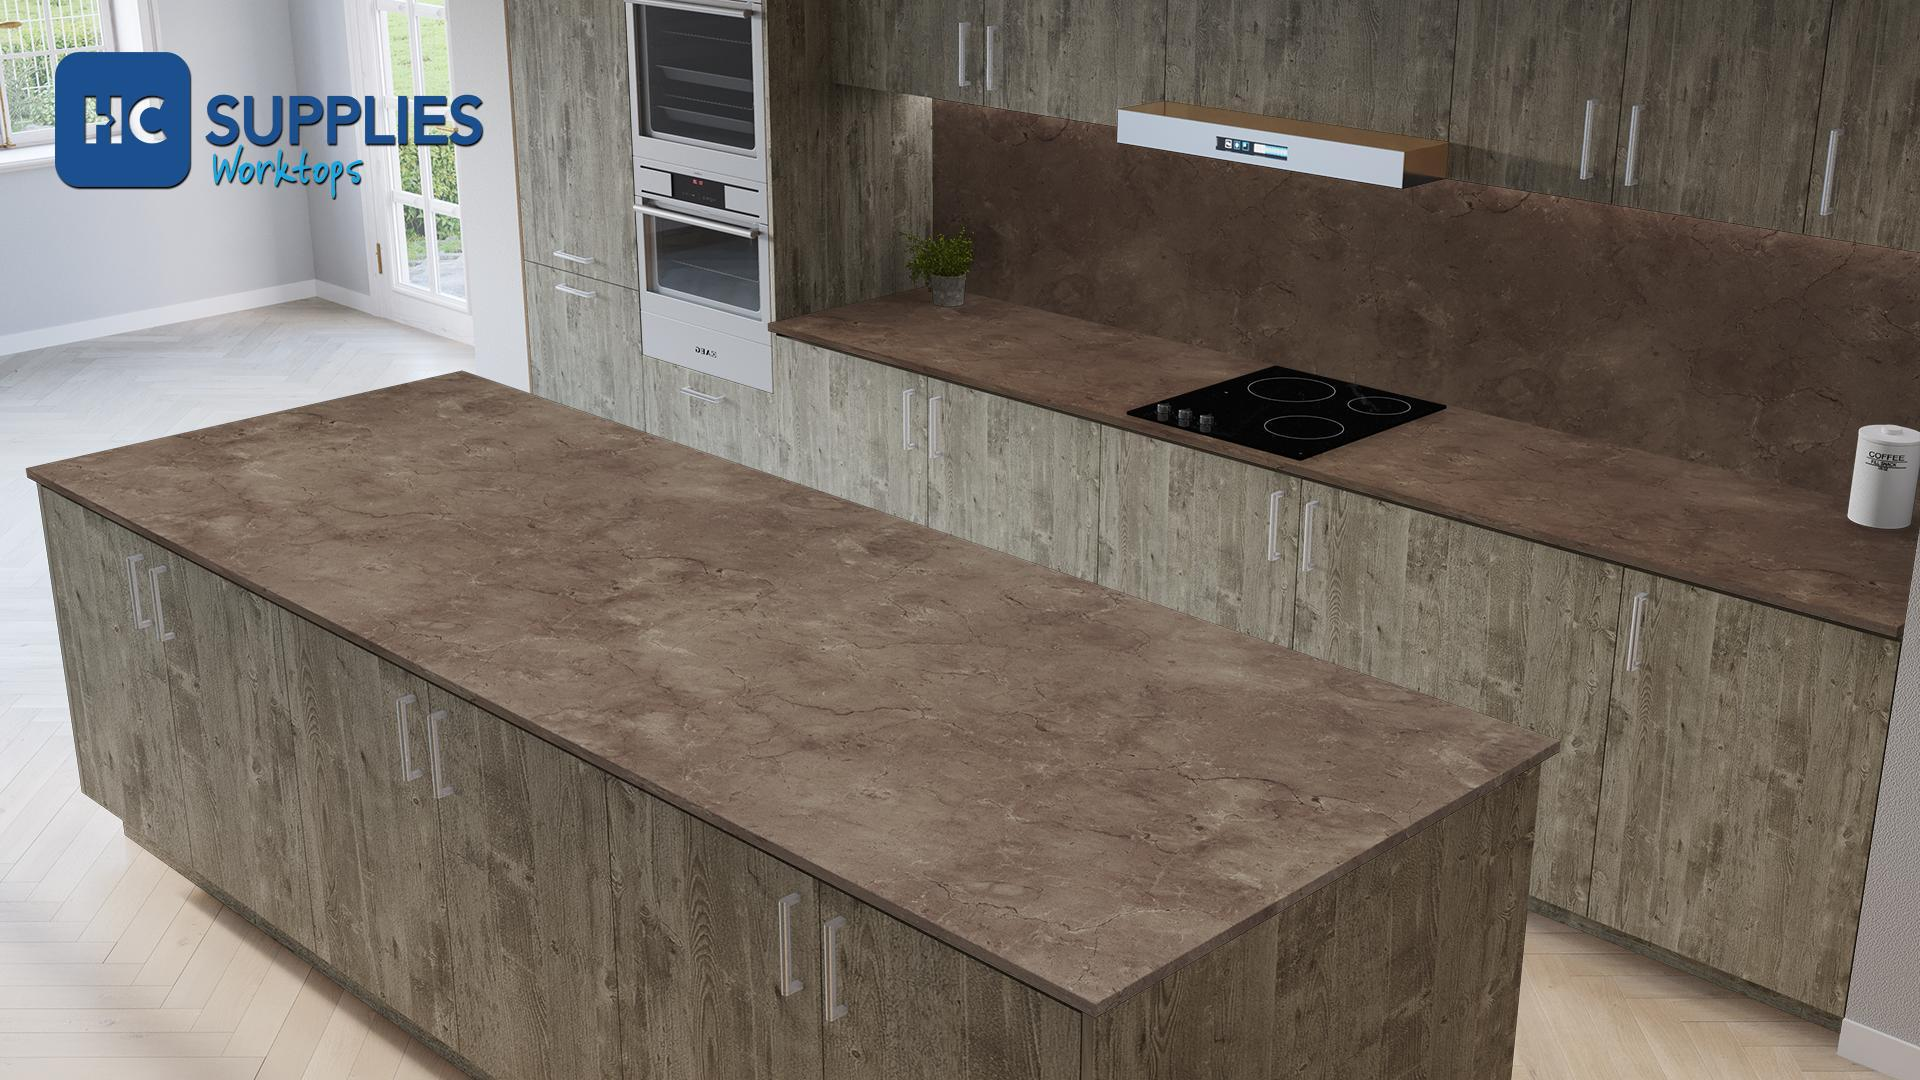 Axiom Marfil Pomice  Worktop Product Image